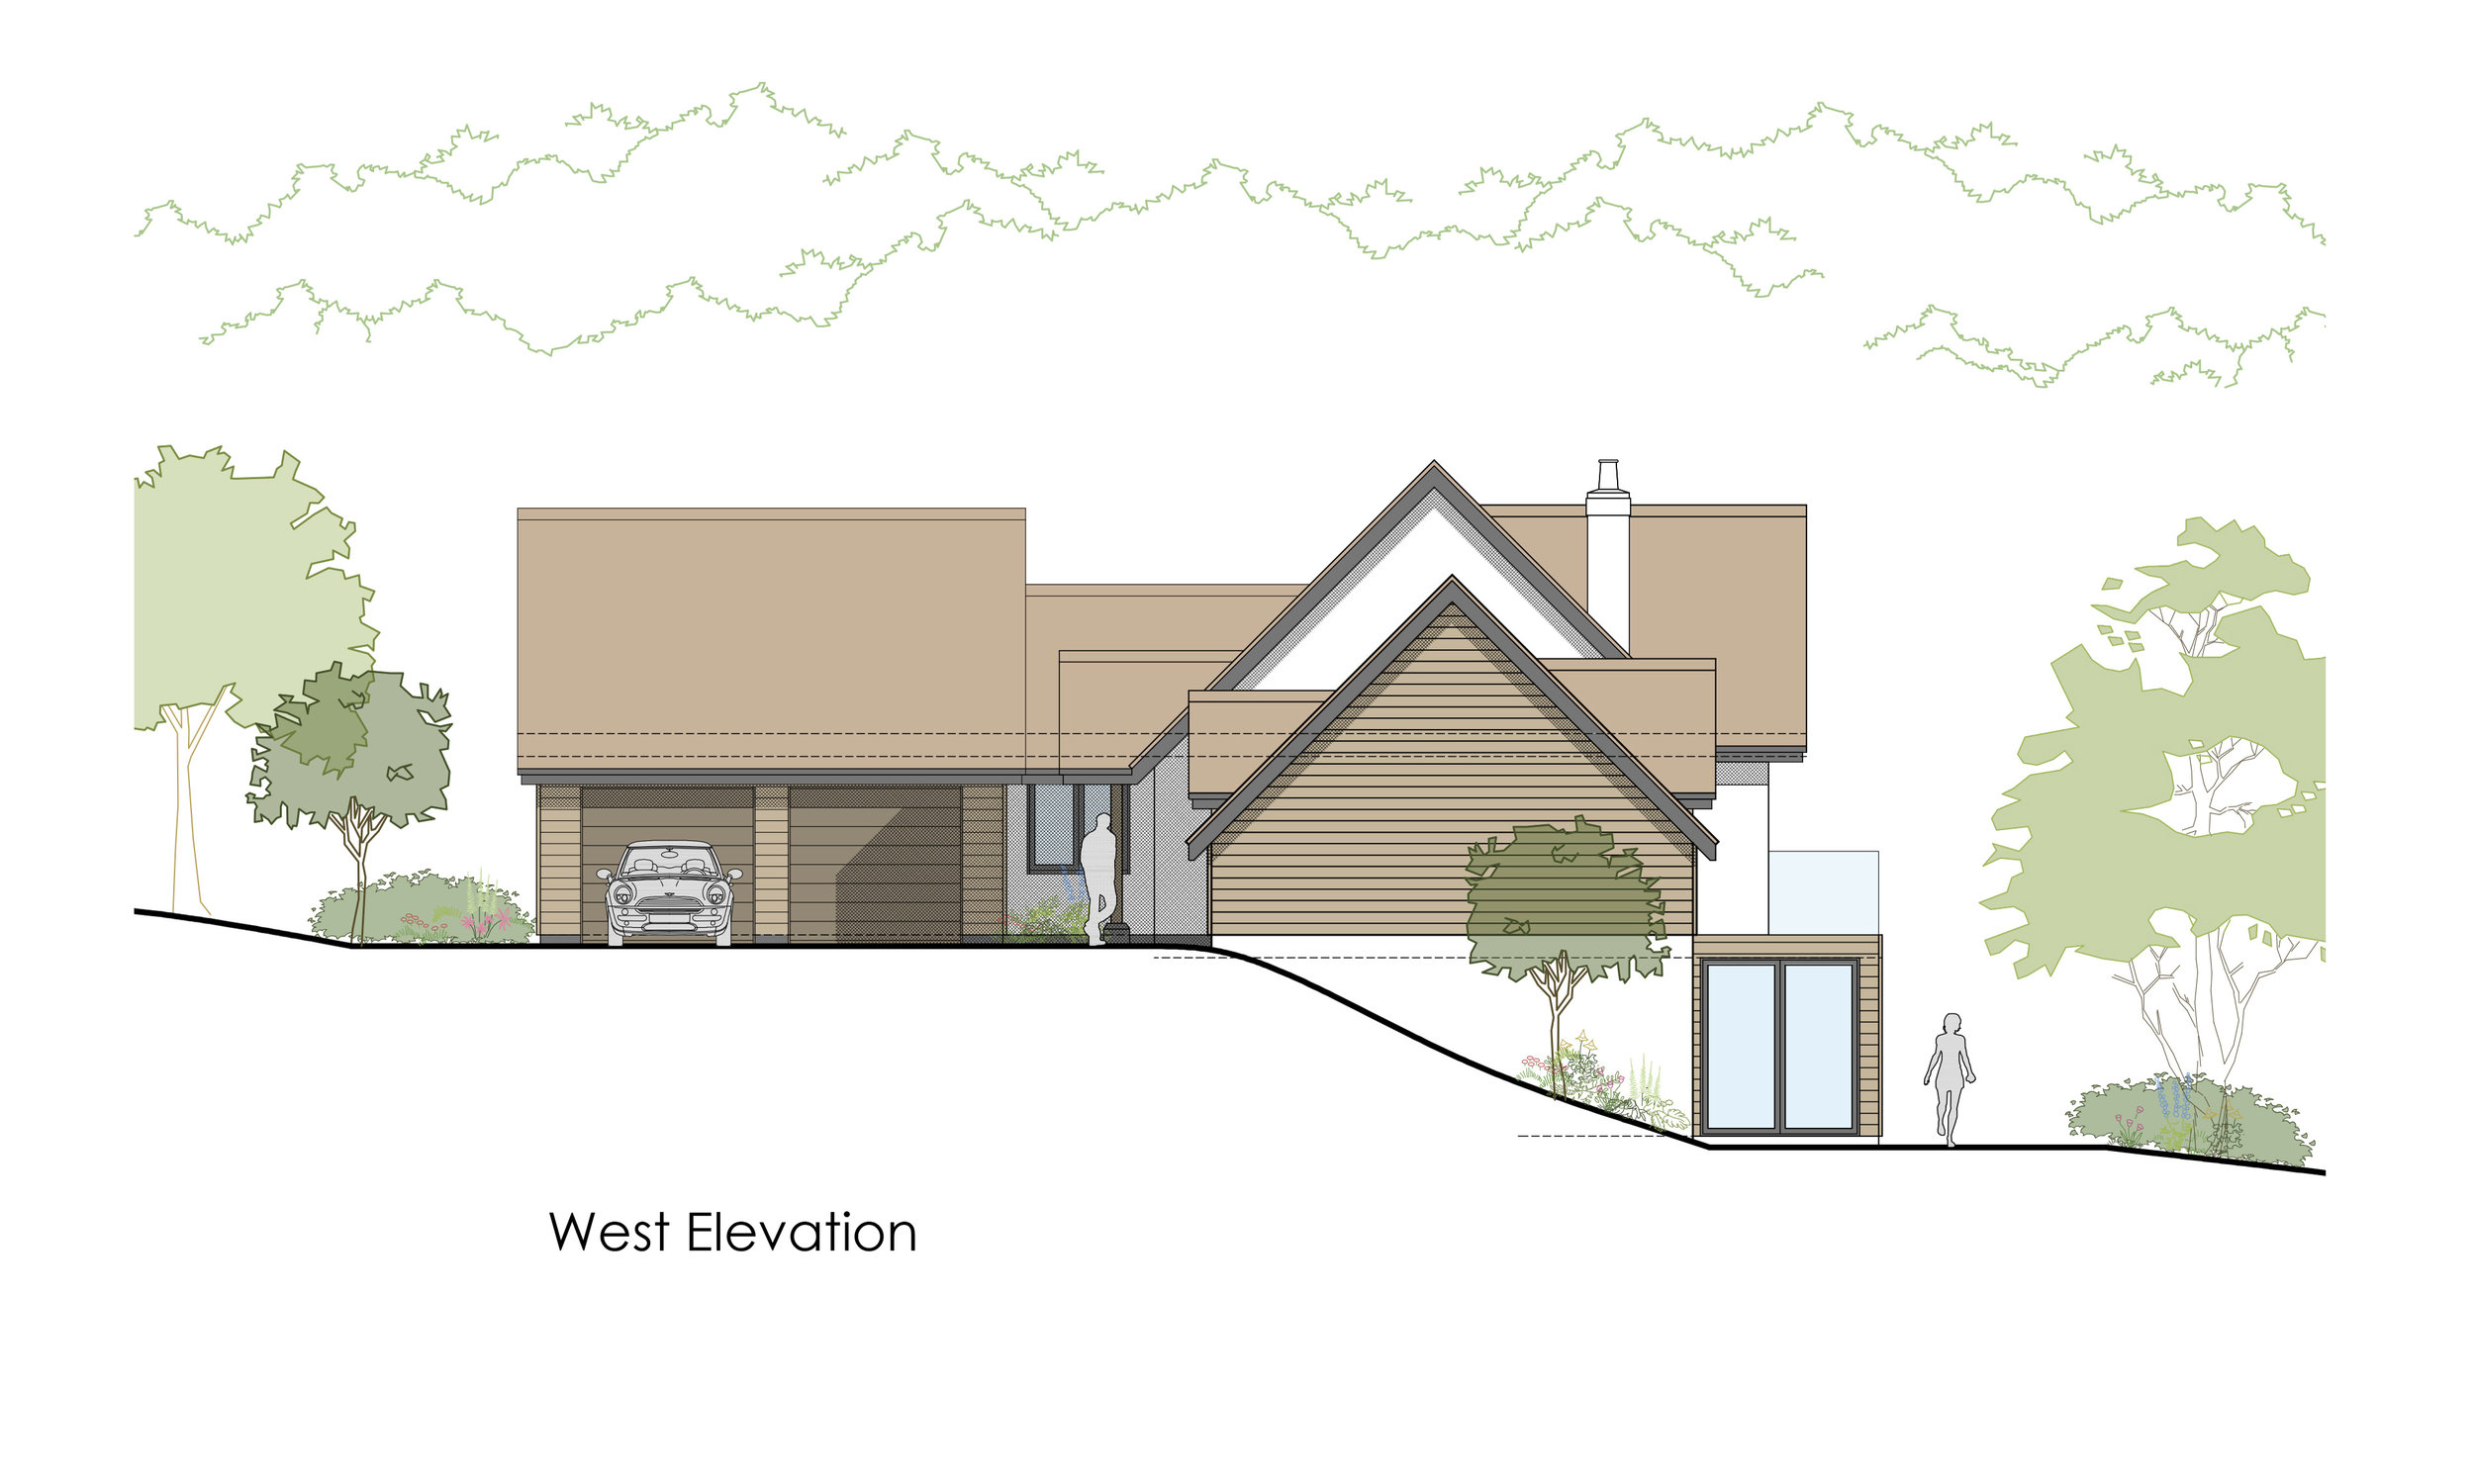 P18-004-02-05-004 - Proposed West Elevation.jpg